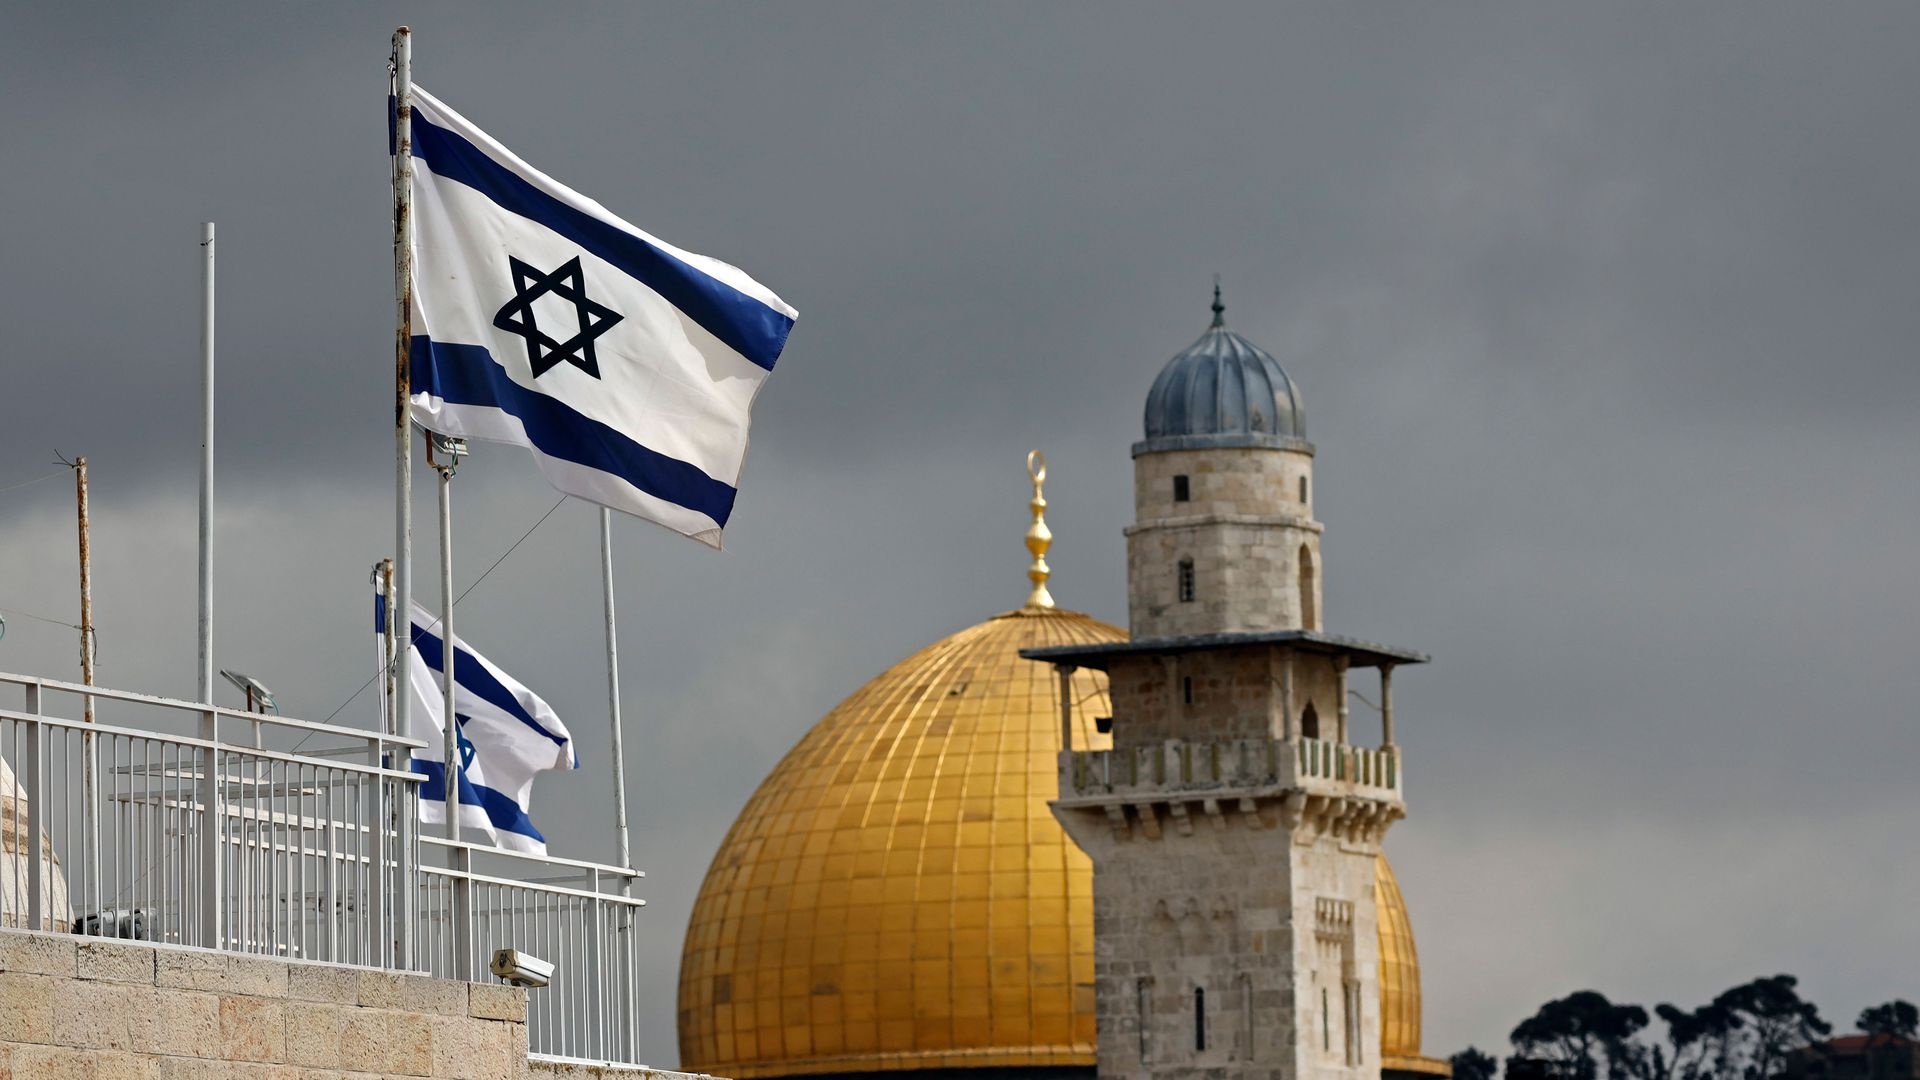 Israeli flags flutter in front of the Dome of the Rock in the Jerusalem's Old City, on February 19, 2019.